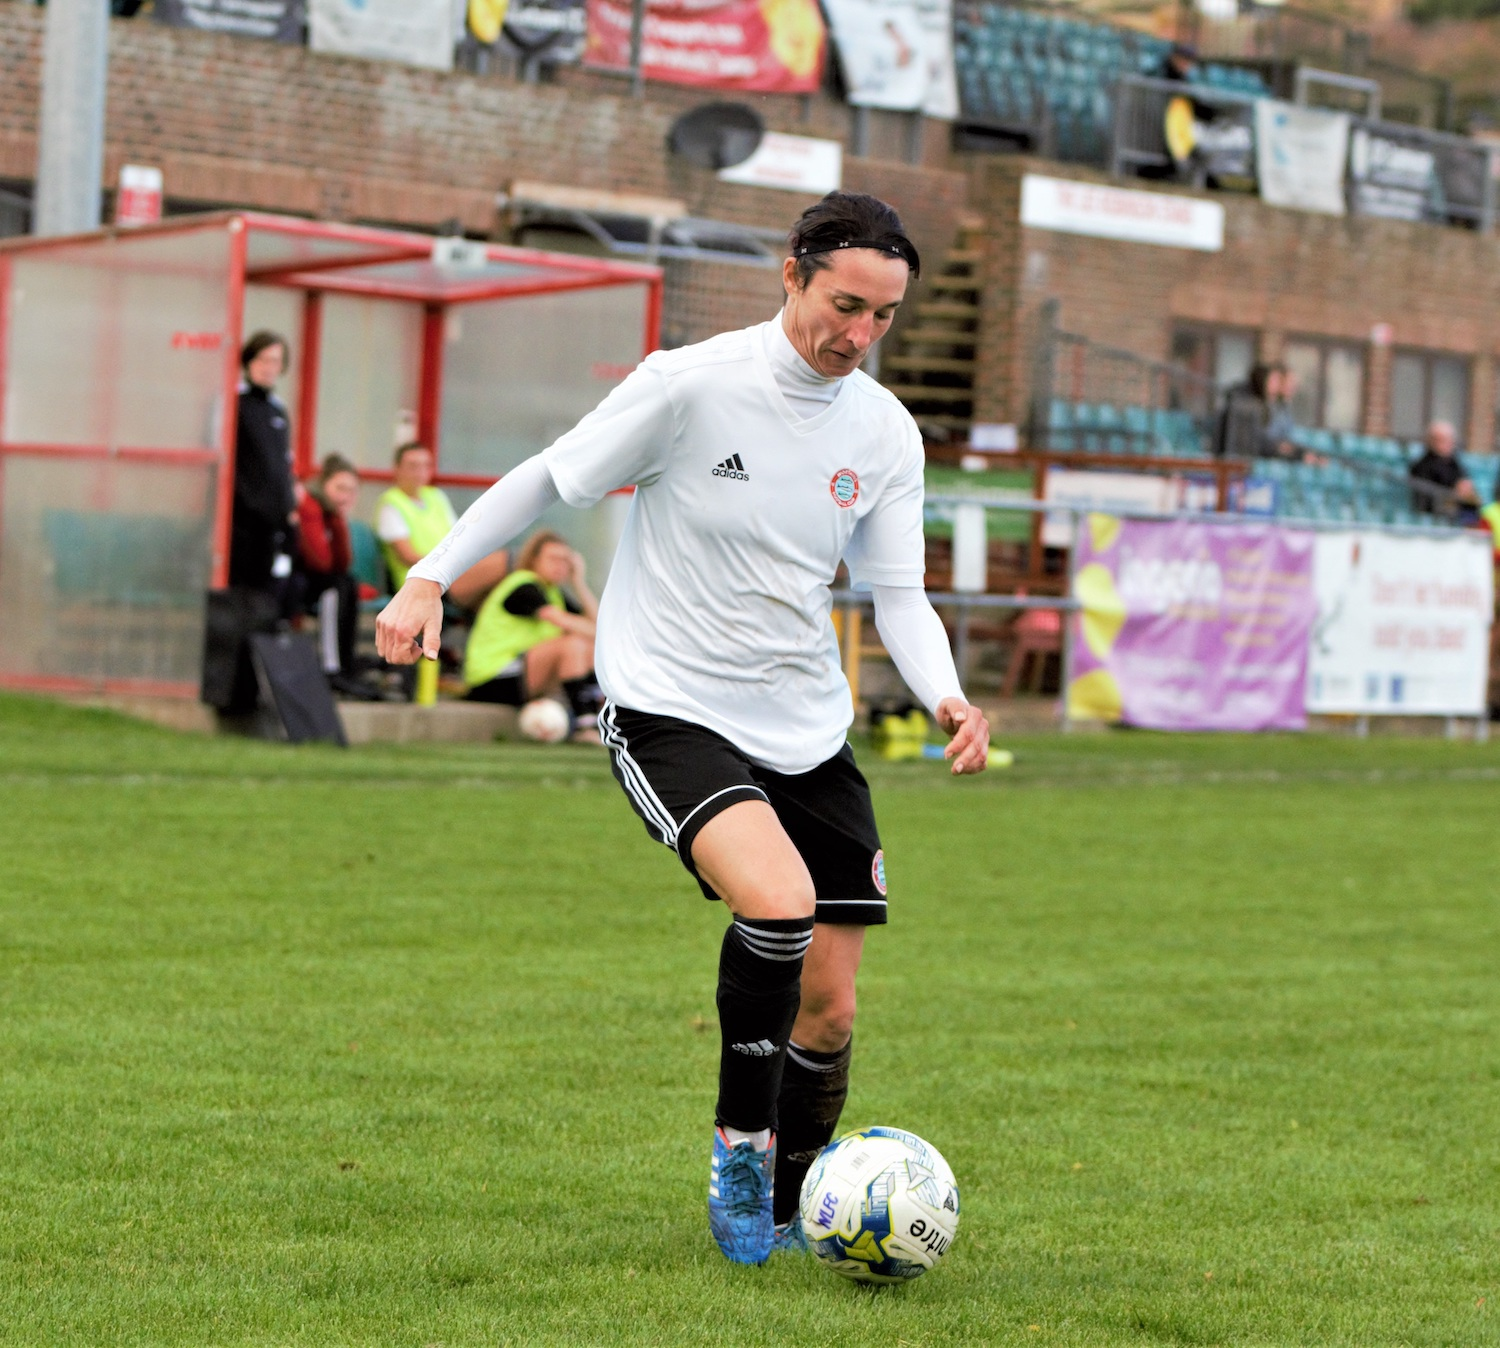 Read the full article - Worthing continue perfect league start with hard-fought win